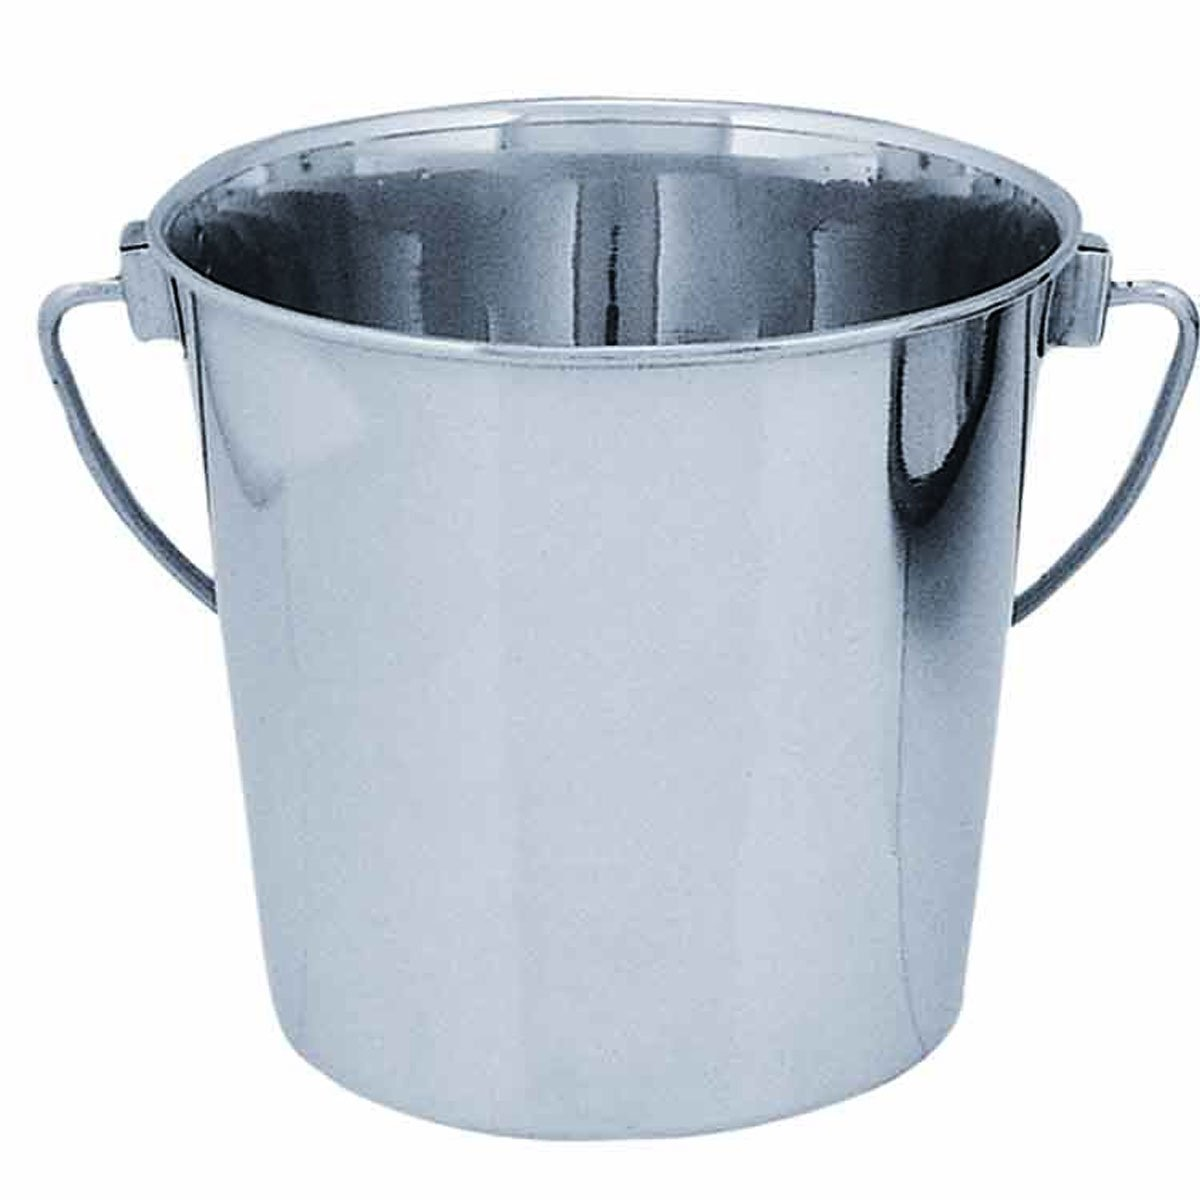 QT Dog Round Stainless Steel Bucket, 4 quart